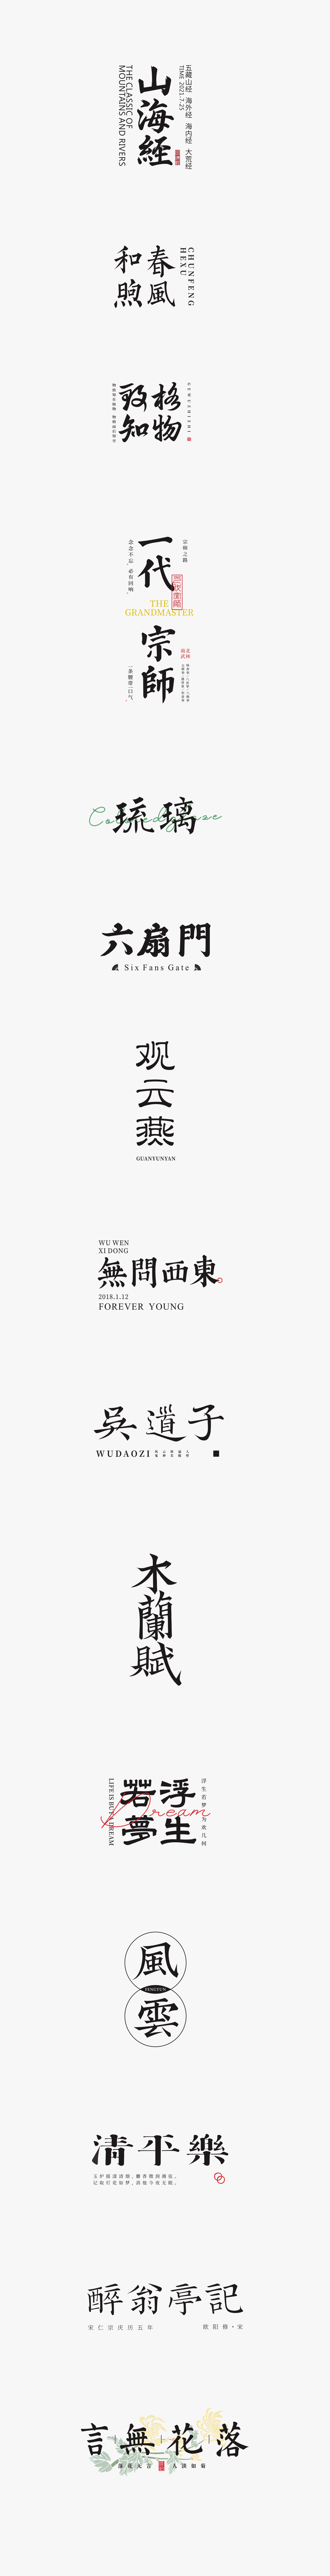 16P Collection of the latest Chinese font design schemes in 2021 #.462